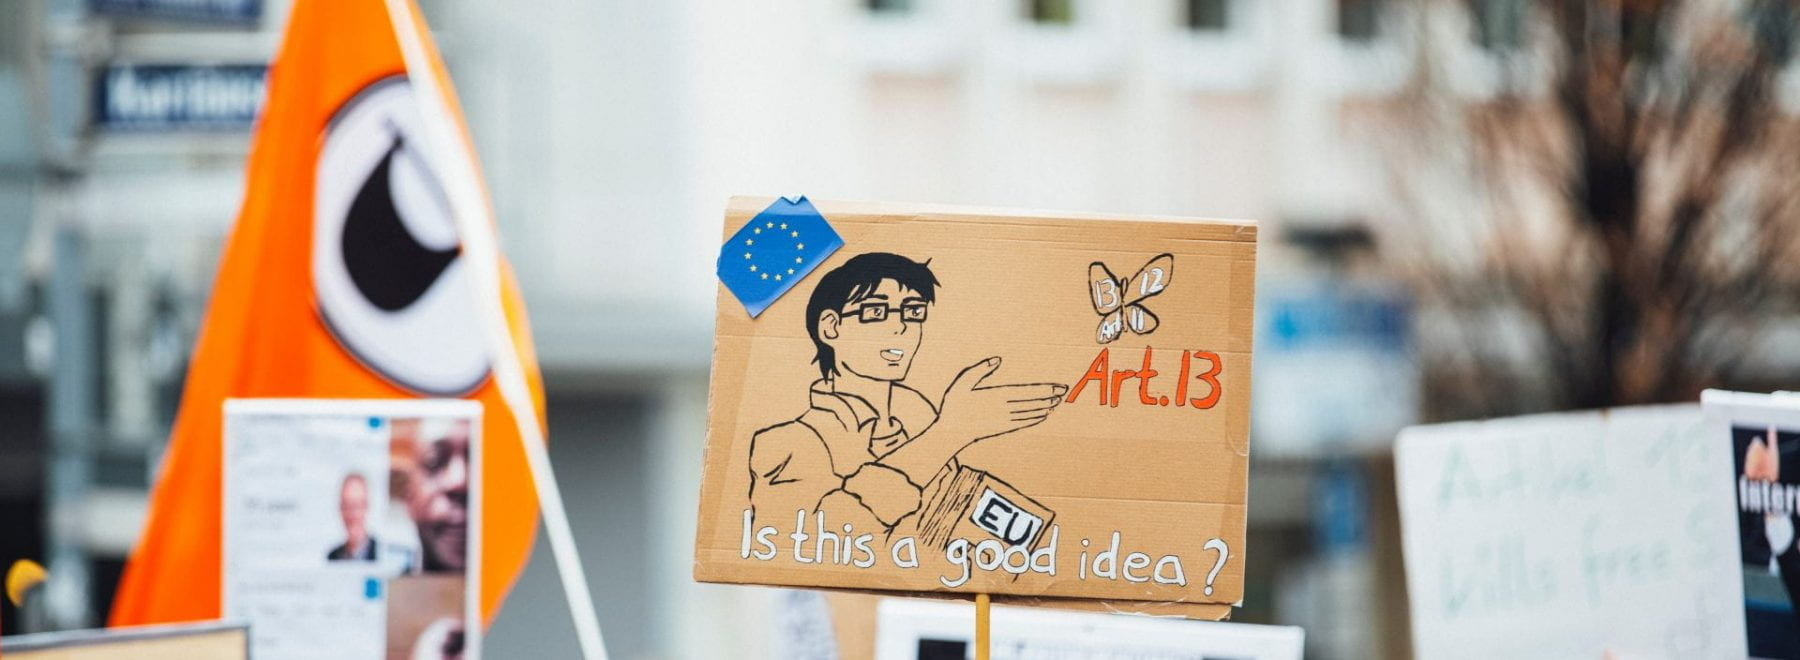 Protest sign reading 'Is Article 13 a good idea?'